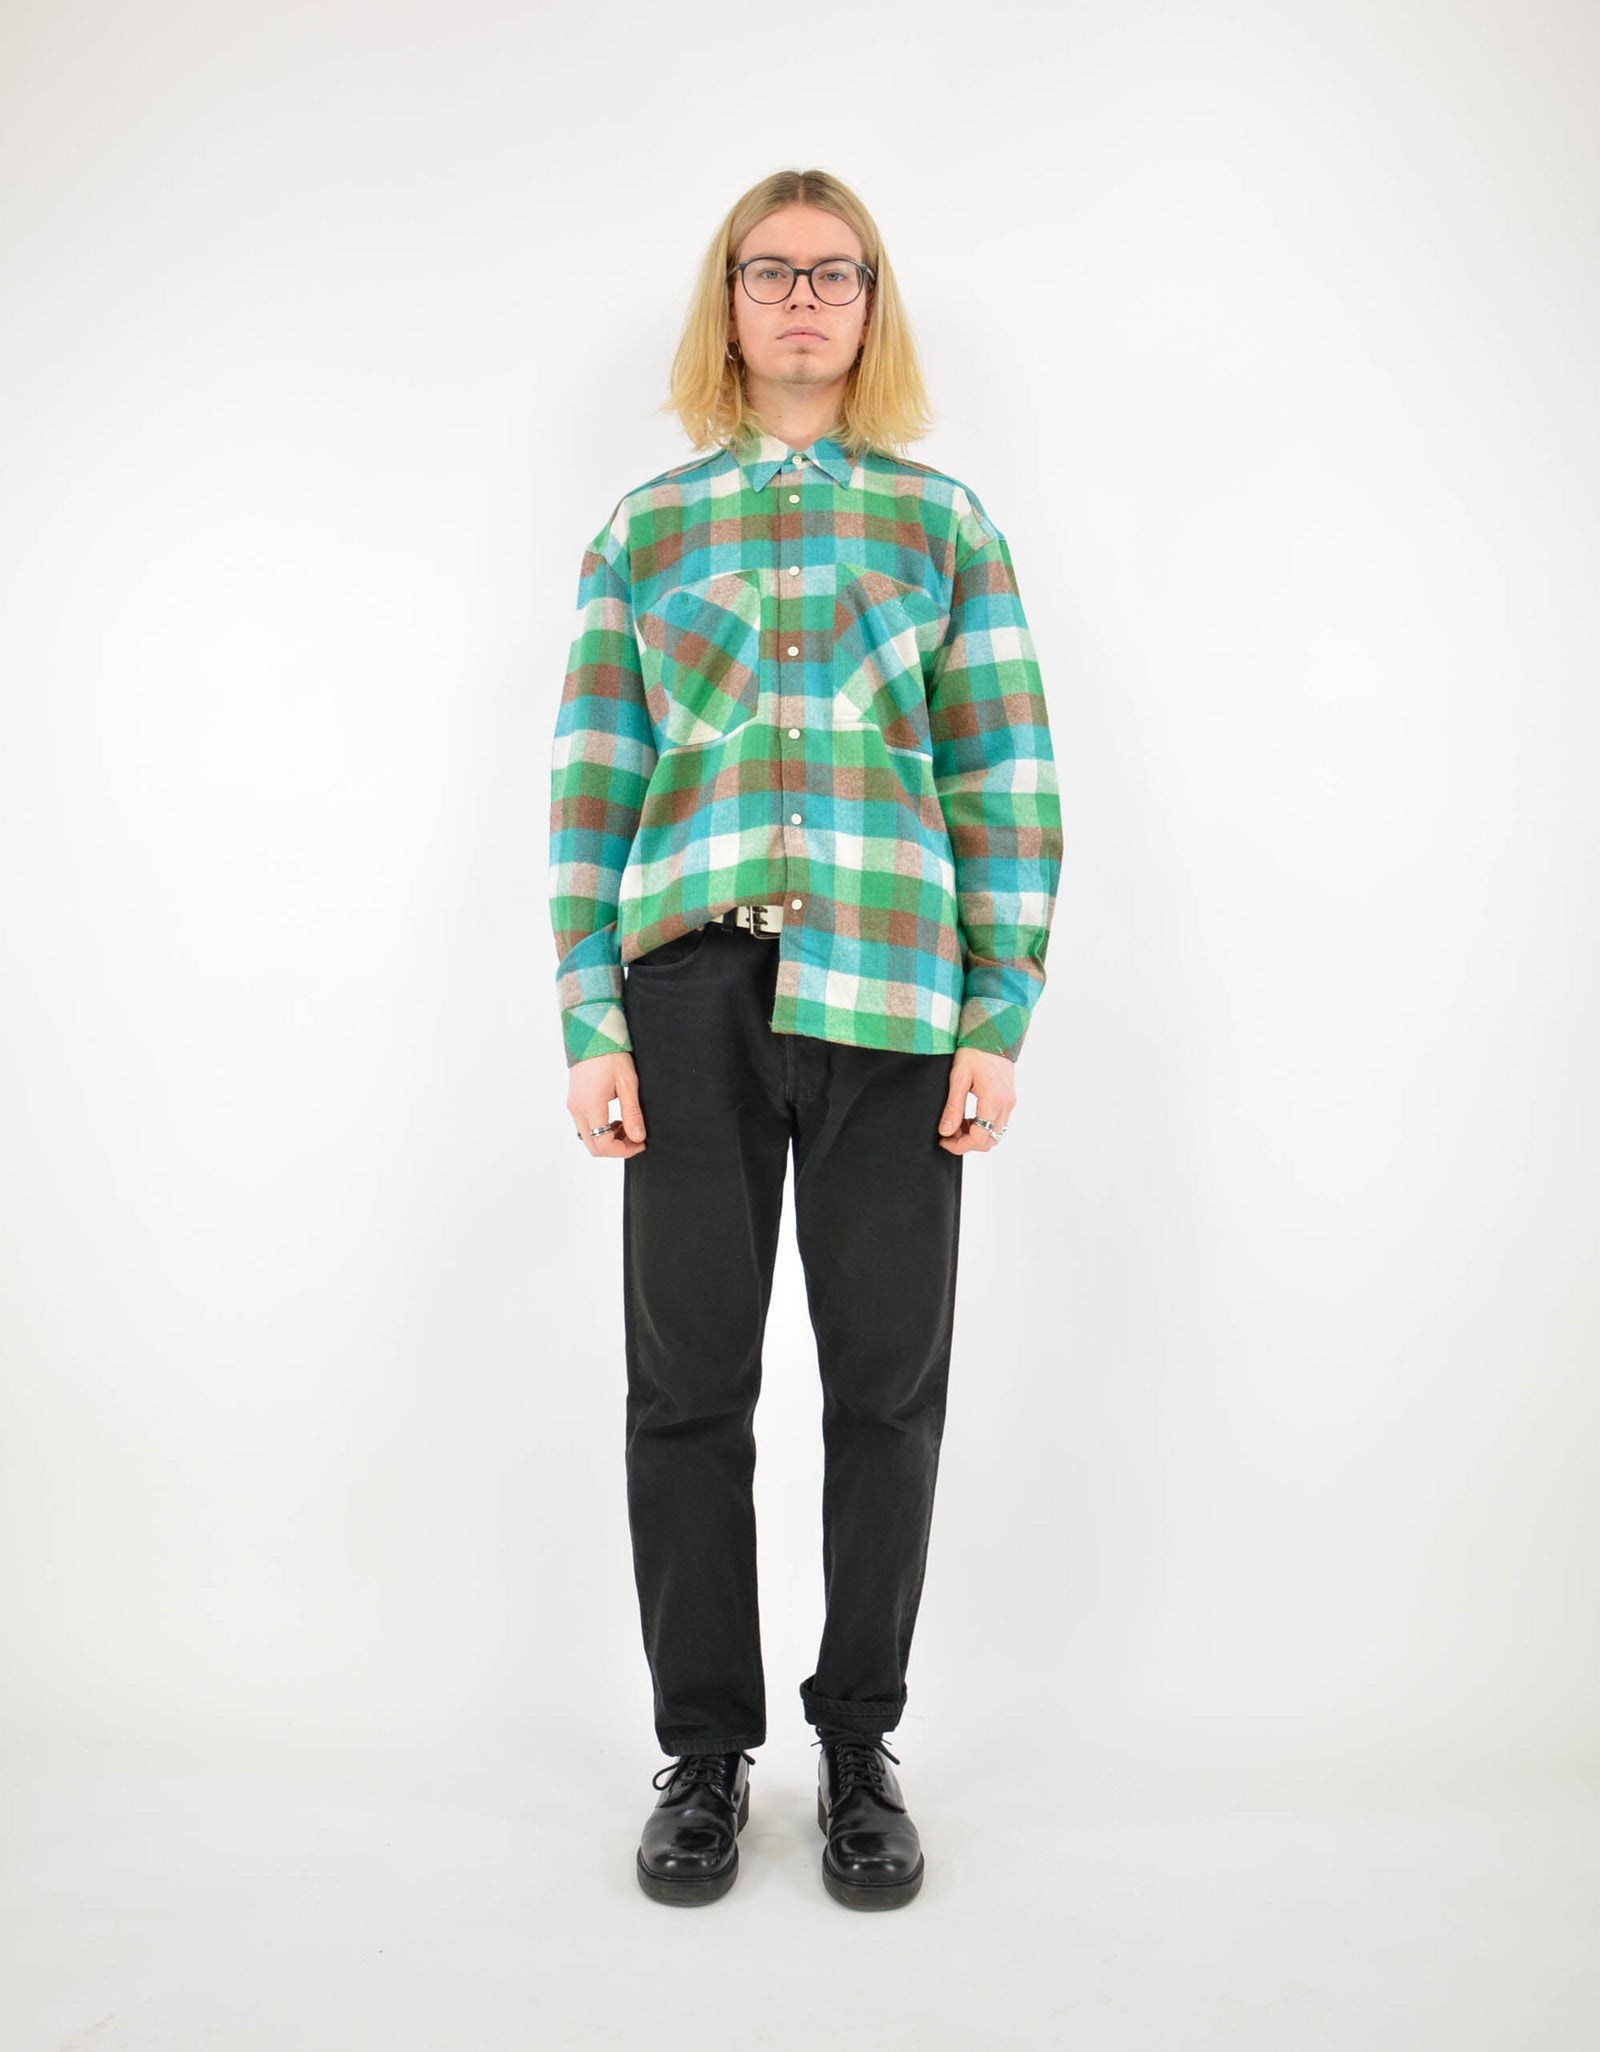 Flannel shirt - PICKNWEIGHT - VINTAGE KILO STORE